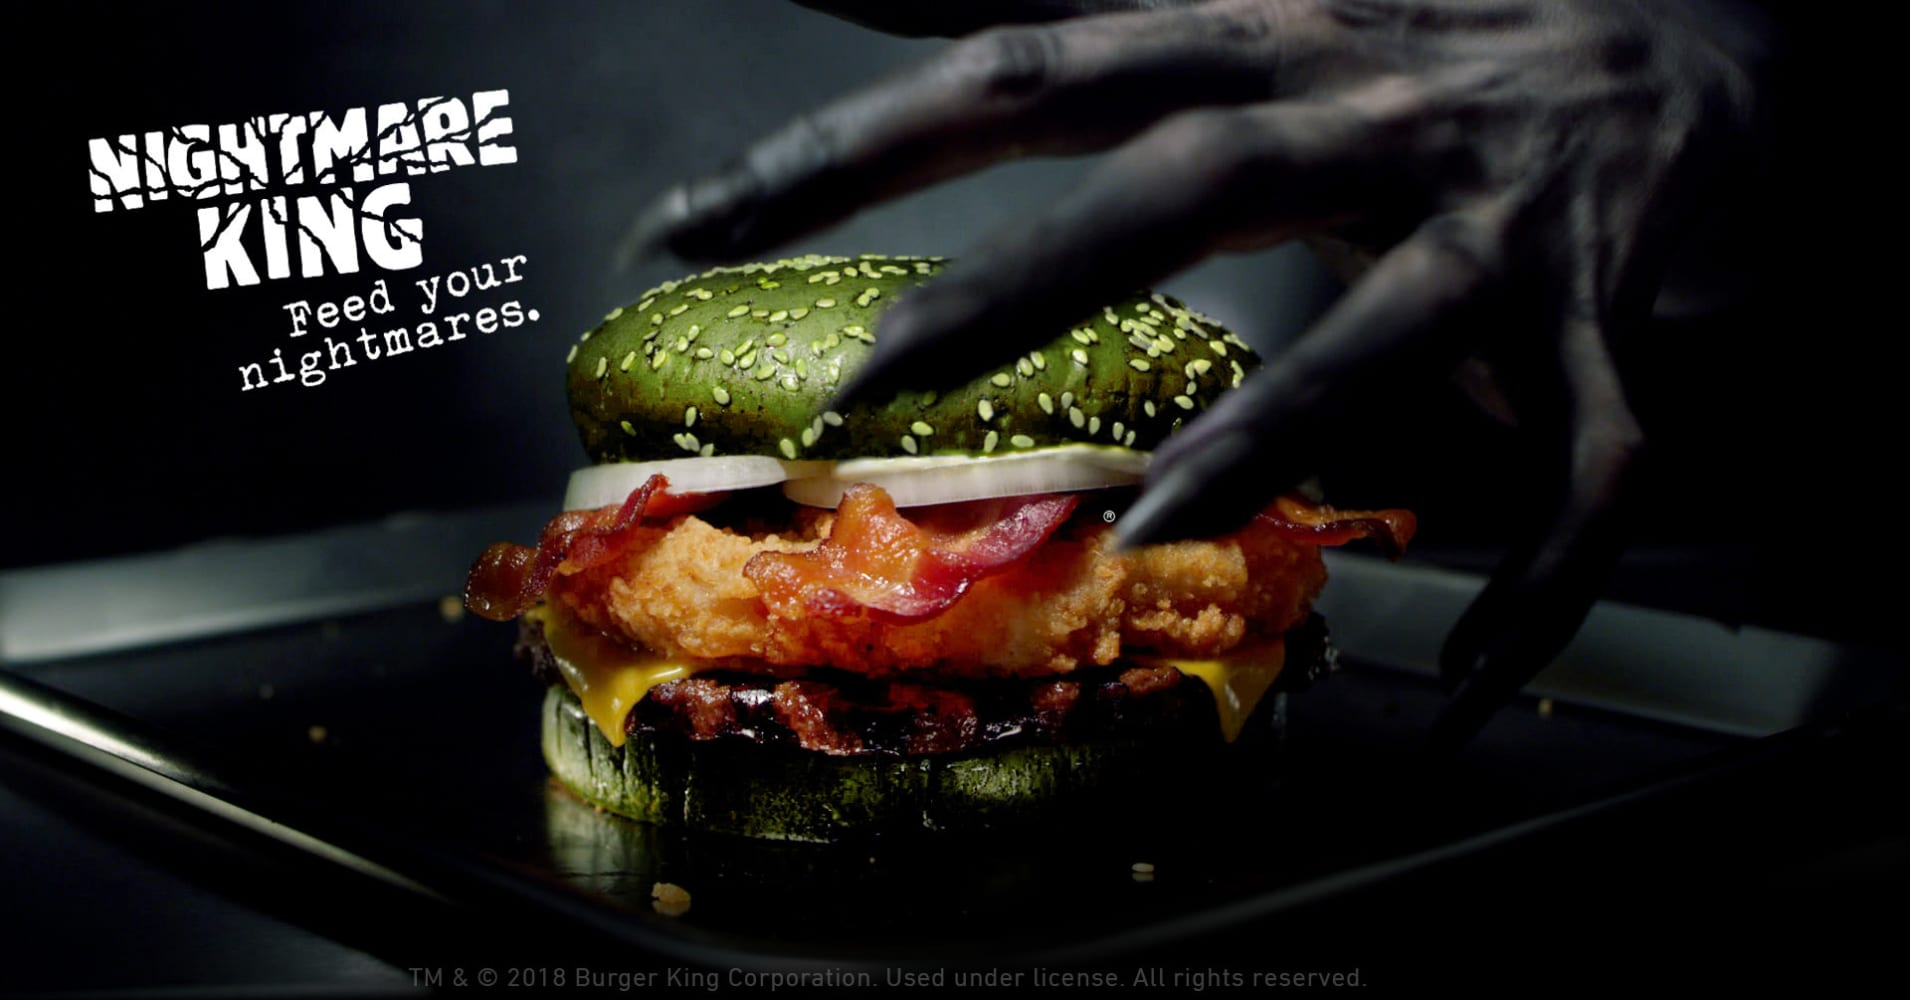 Burger King creates 'nightmare' burger with green bun — and says it will give people bad dreams